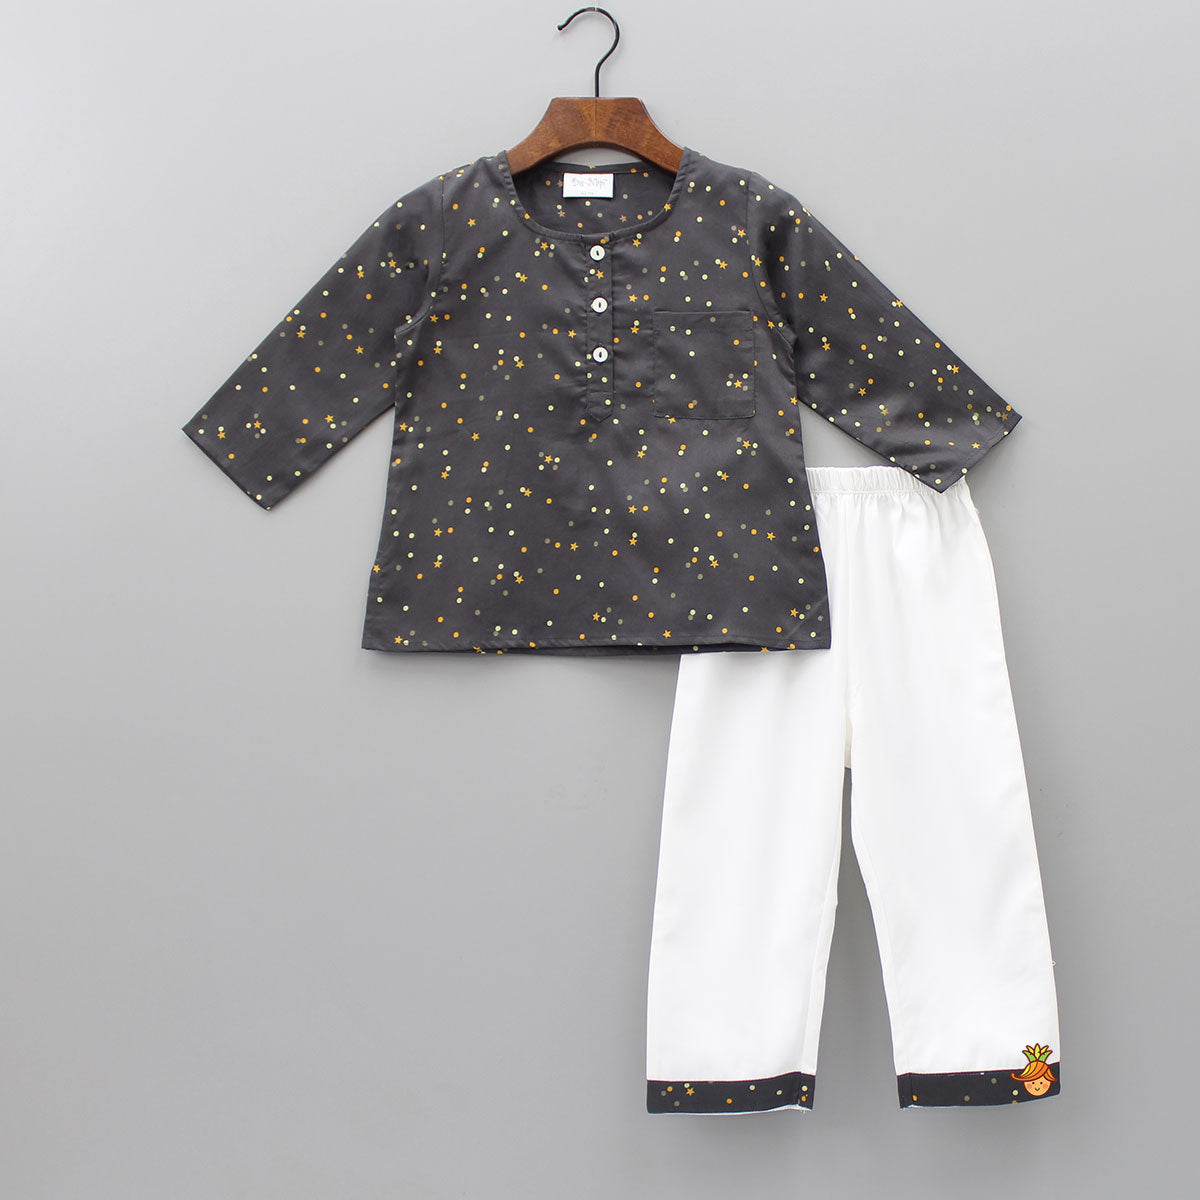 Starry Night Sleepwear